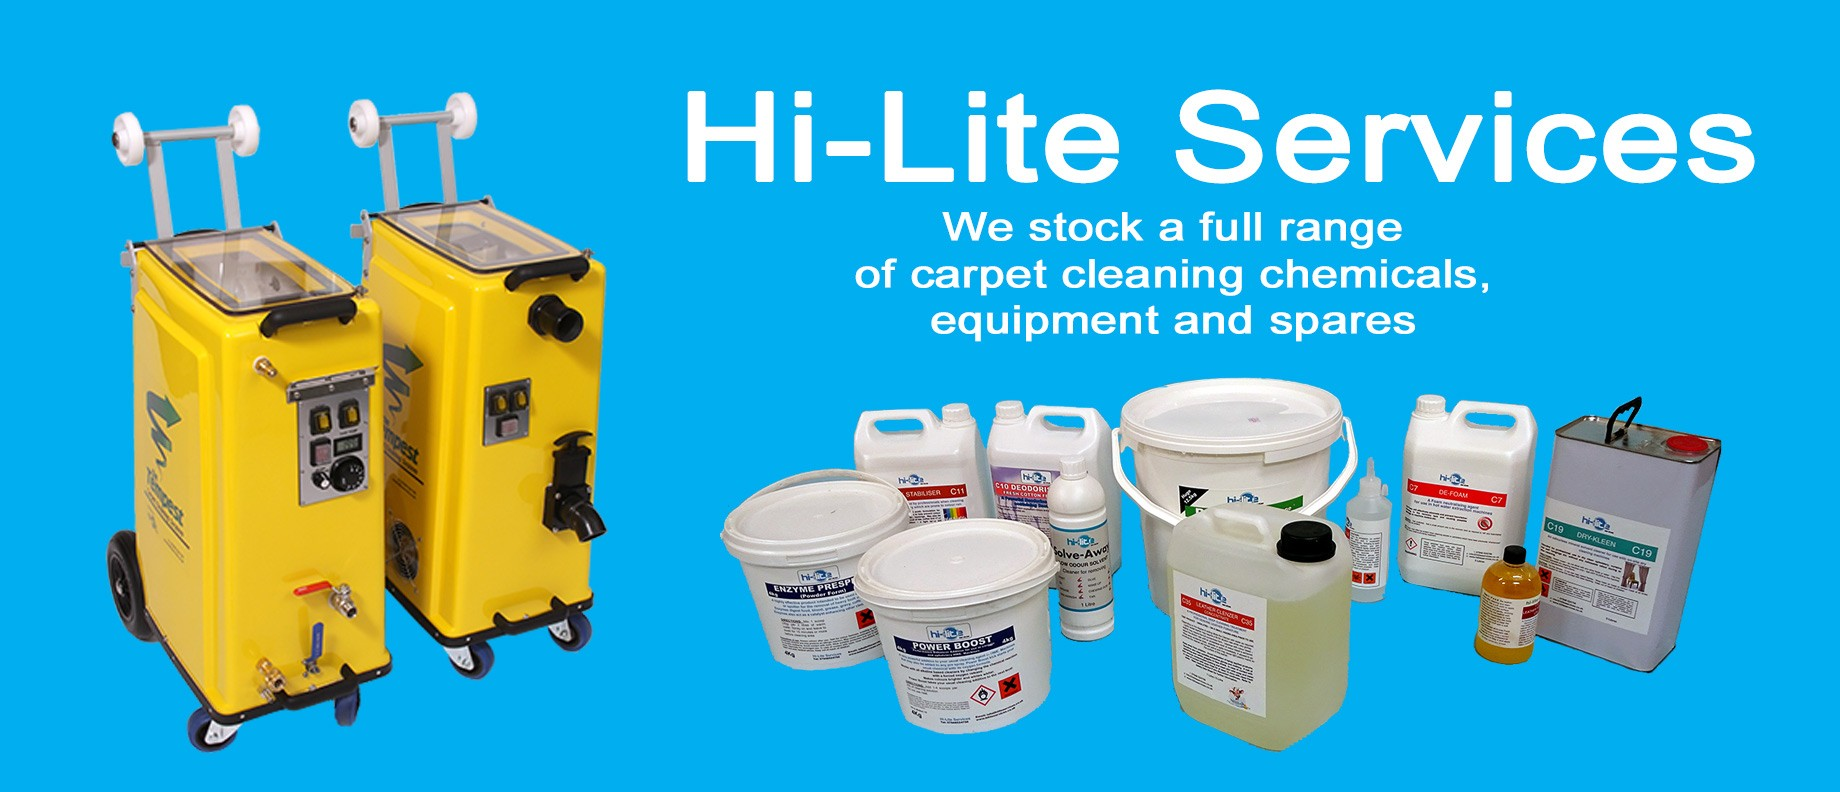 Hi-lite Services header